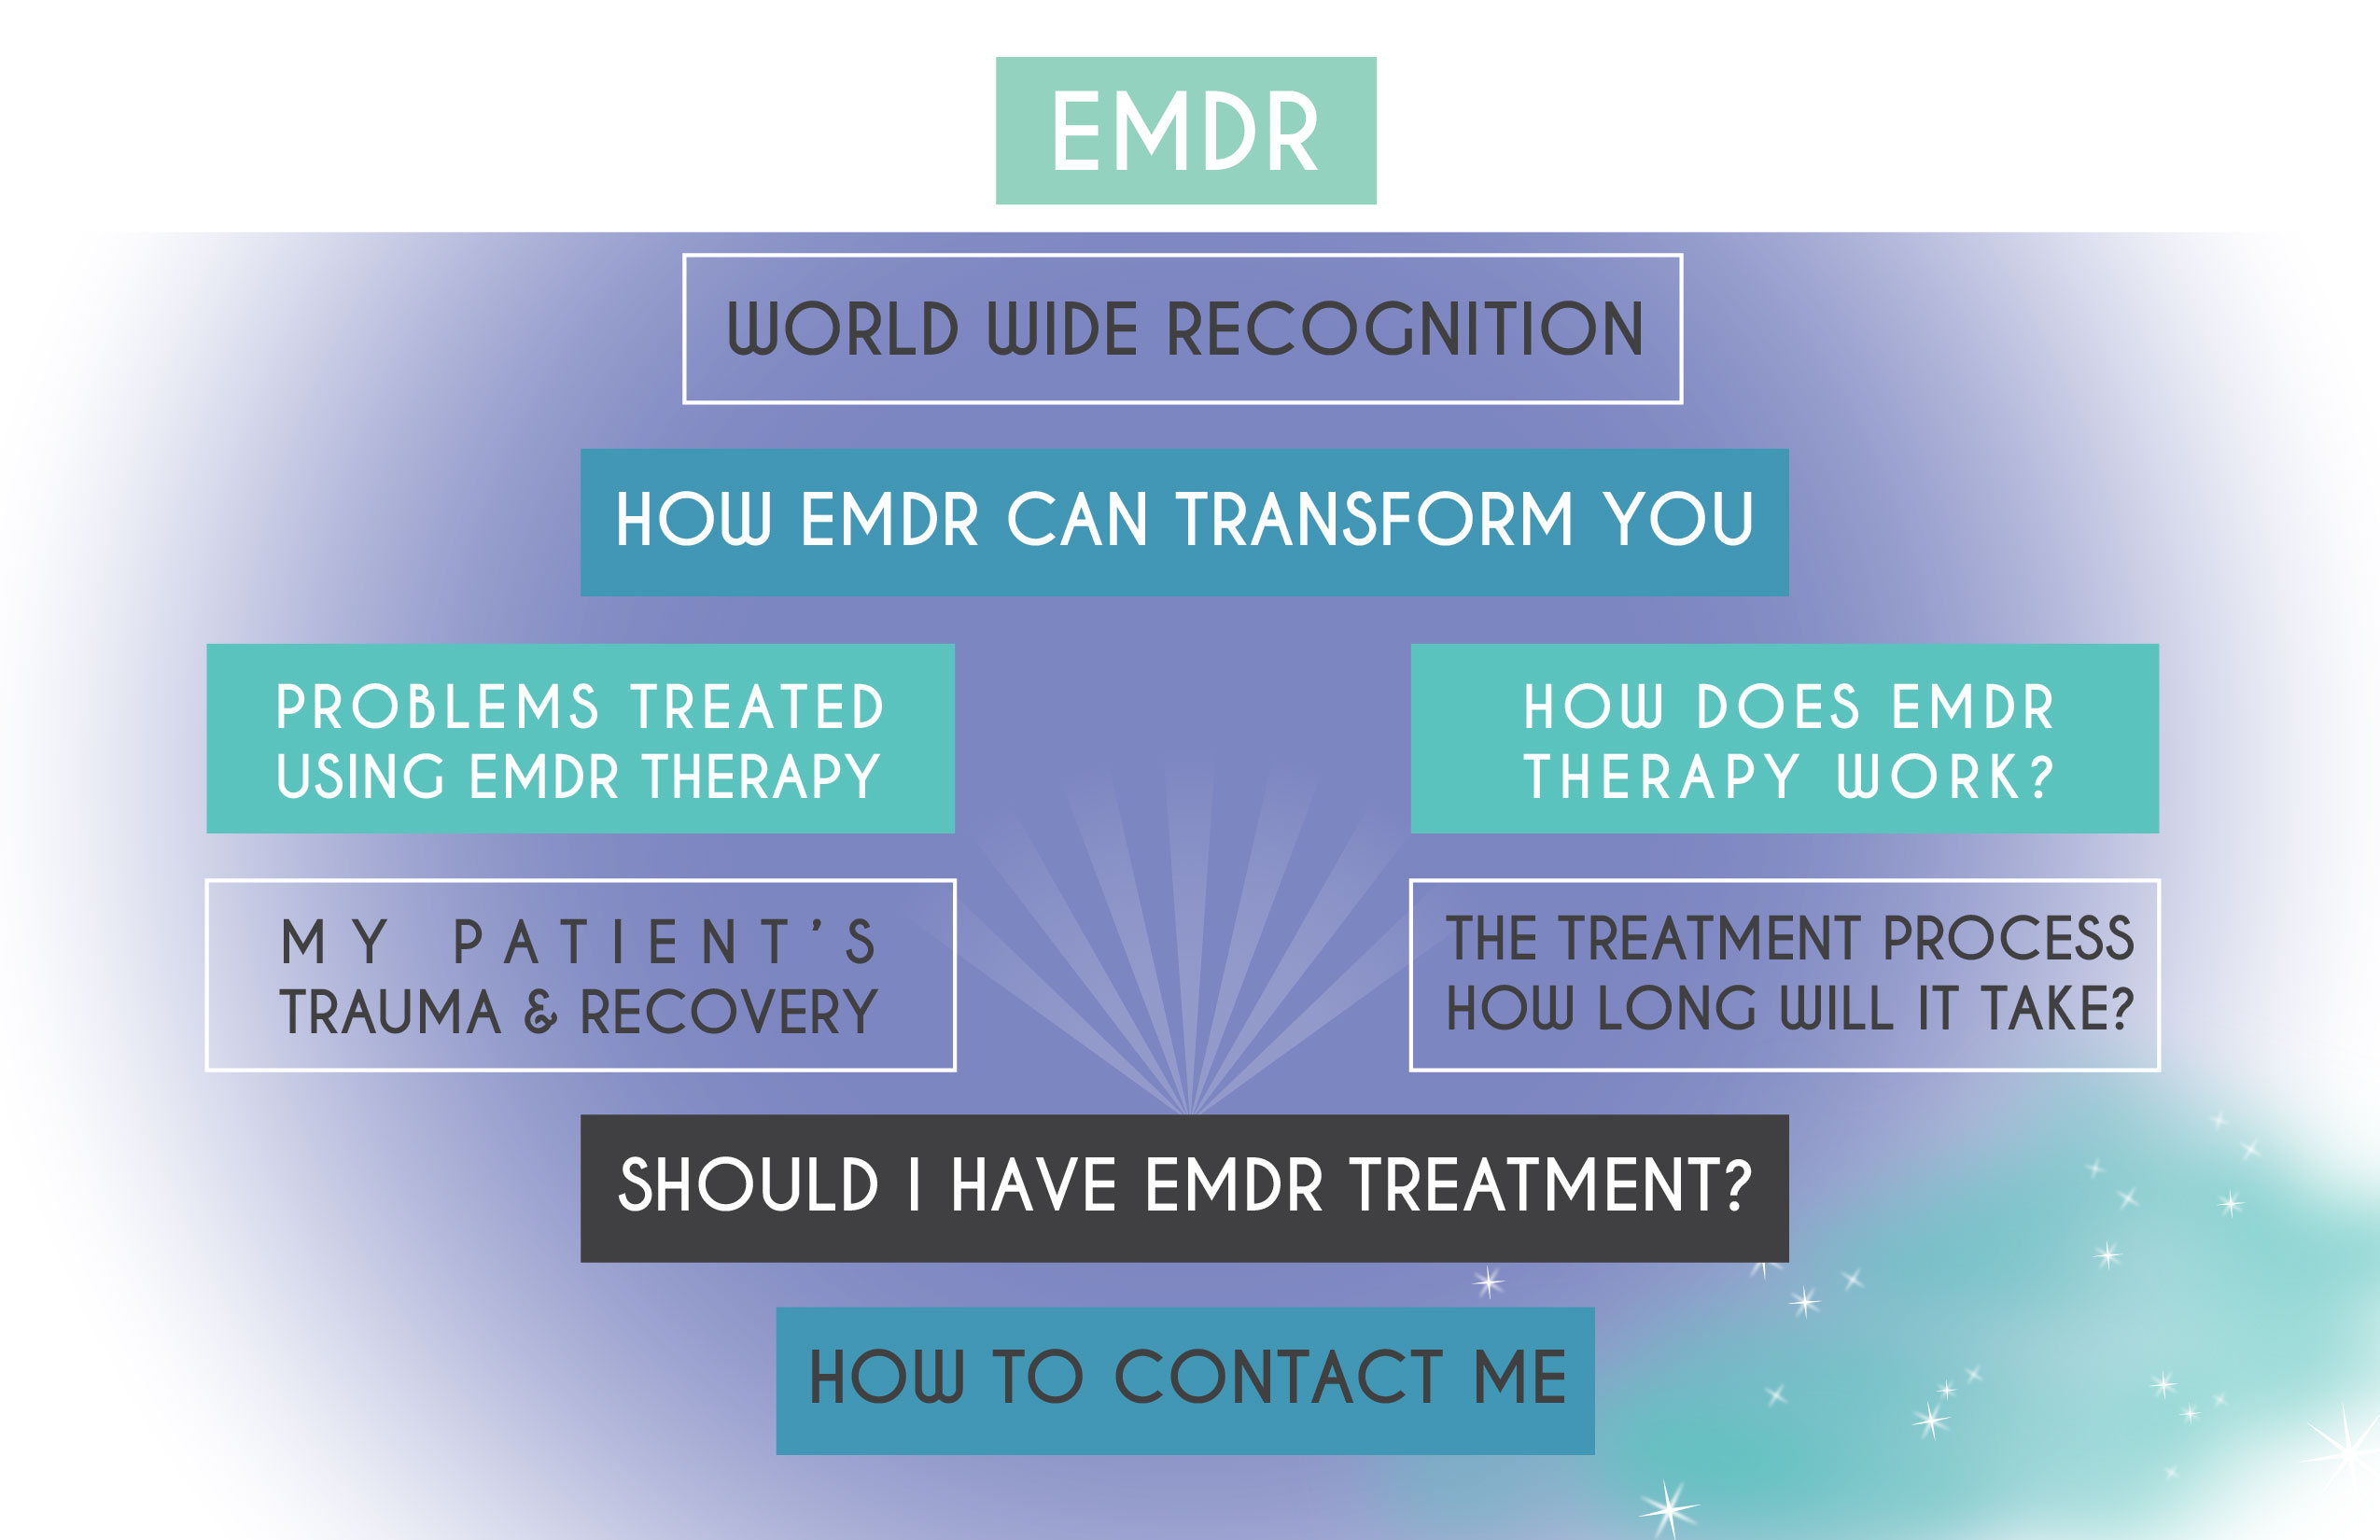 EMDR treatment diagram